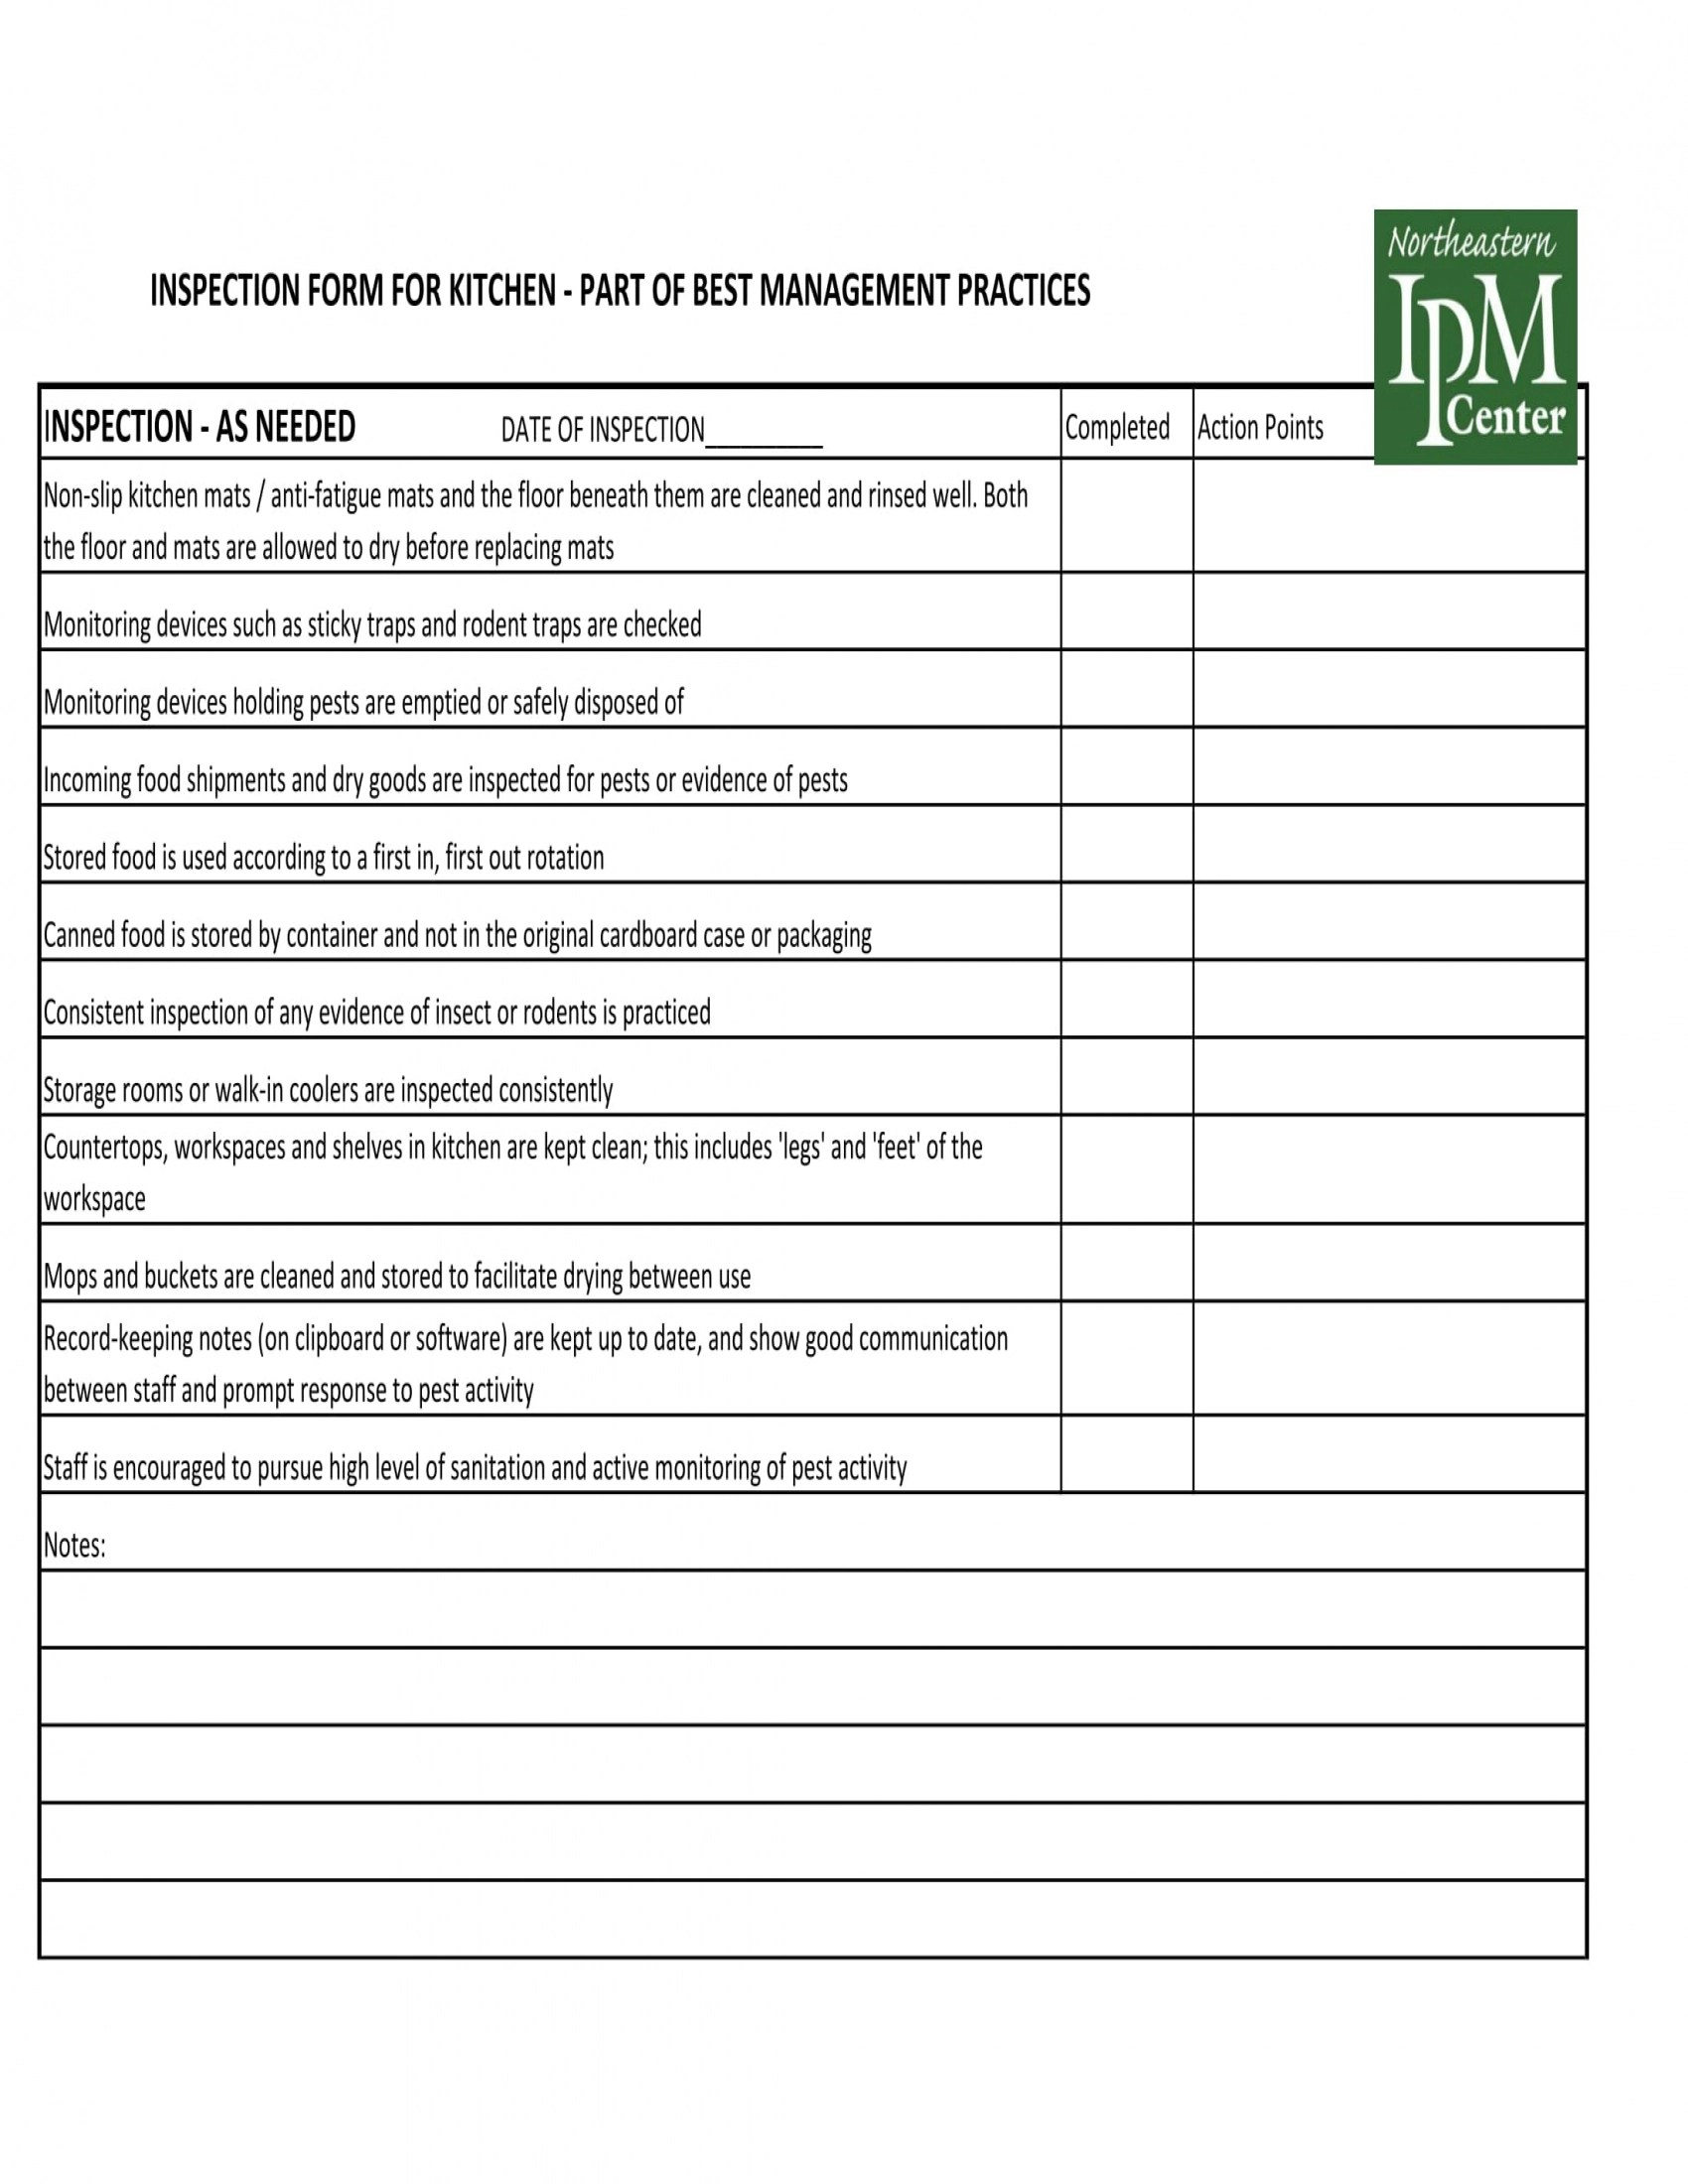 8 Kitchen Management Forms